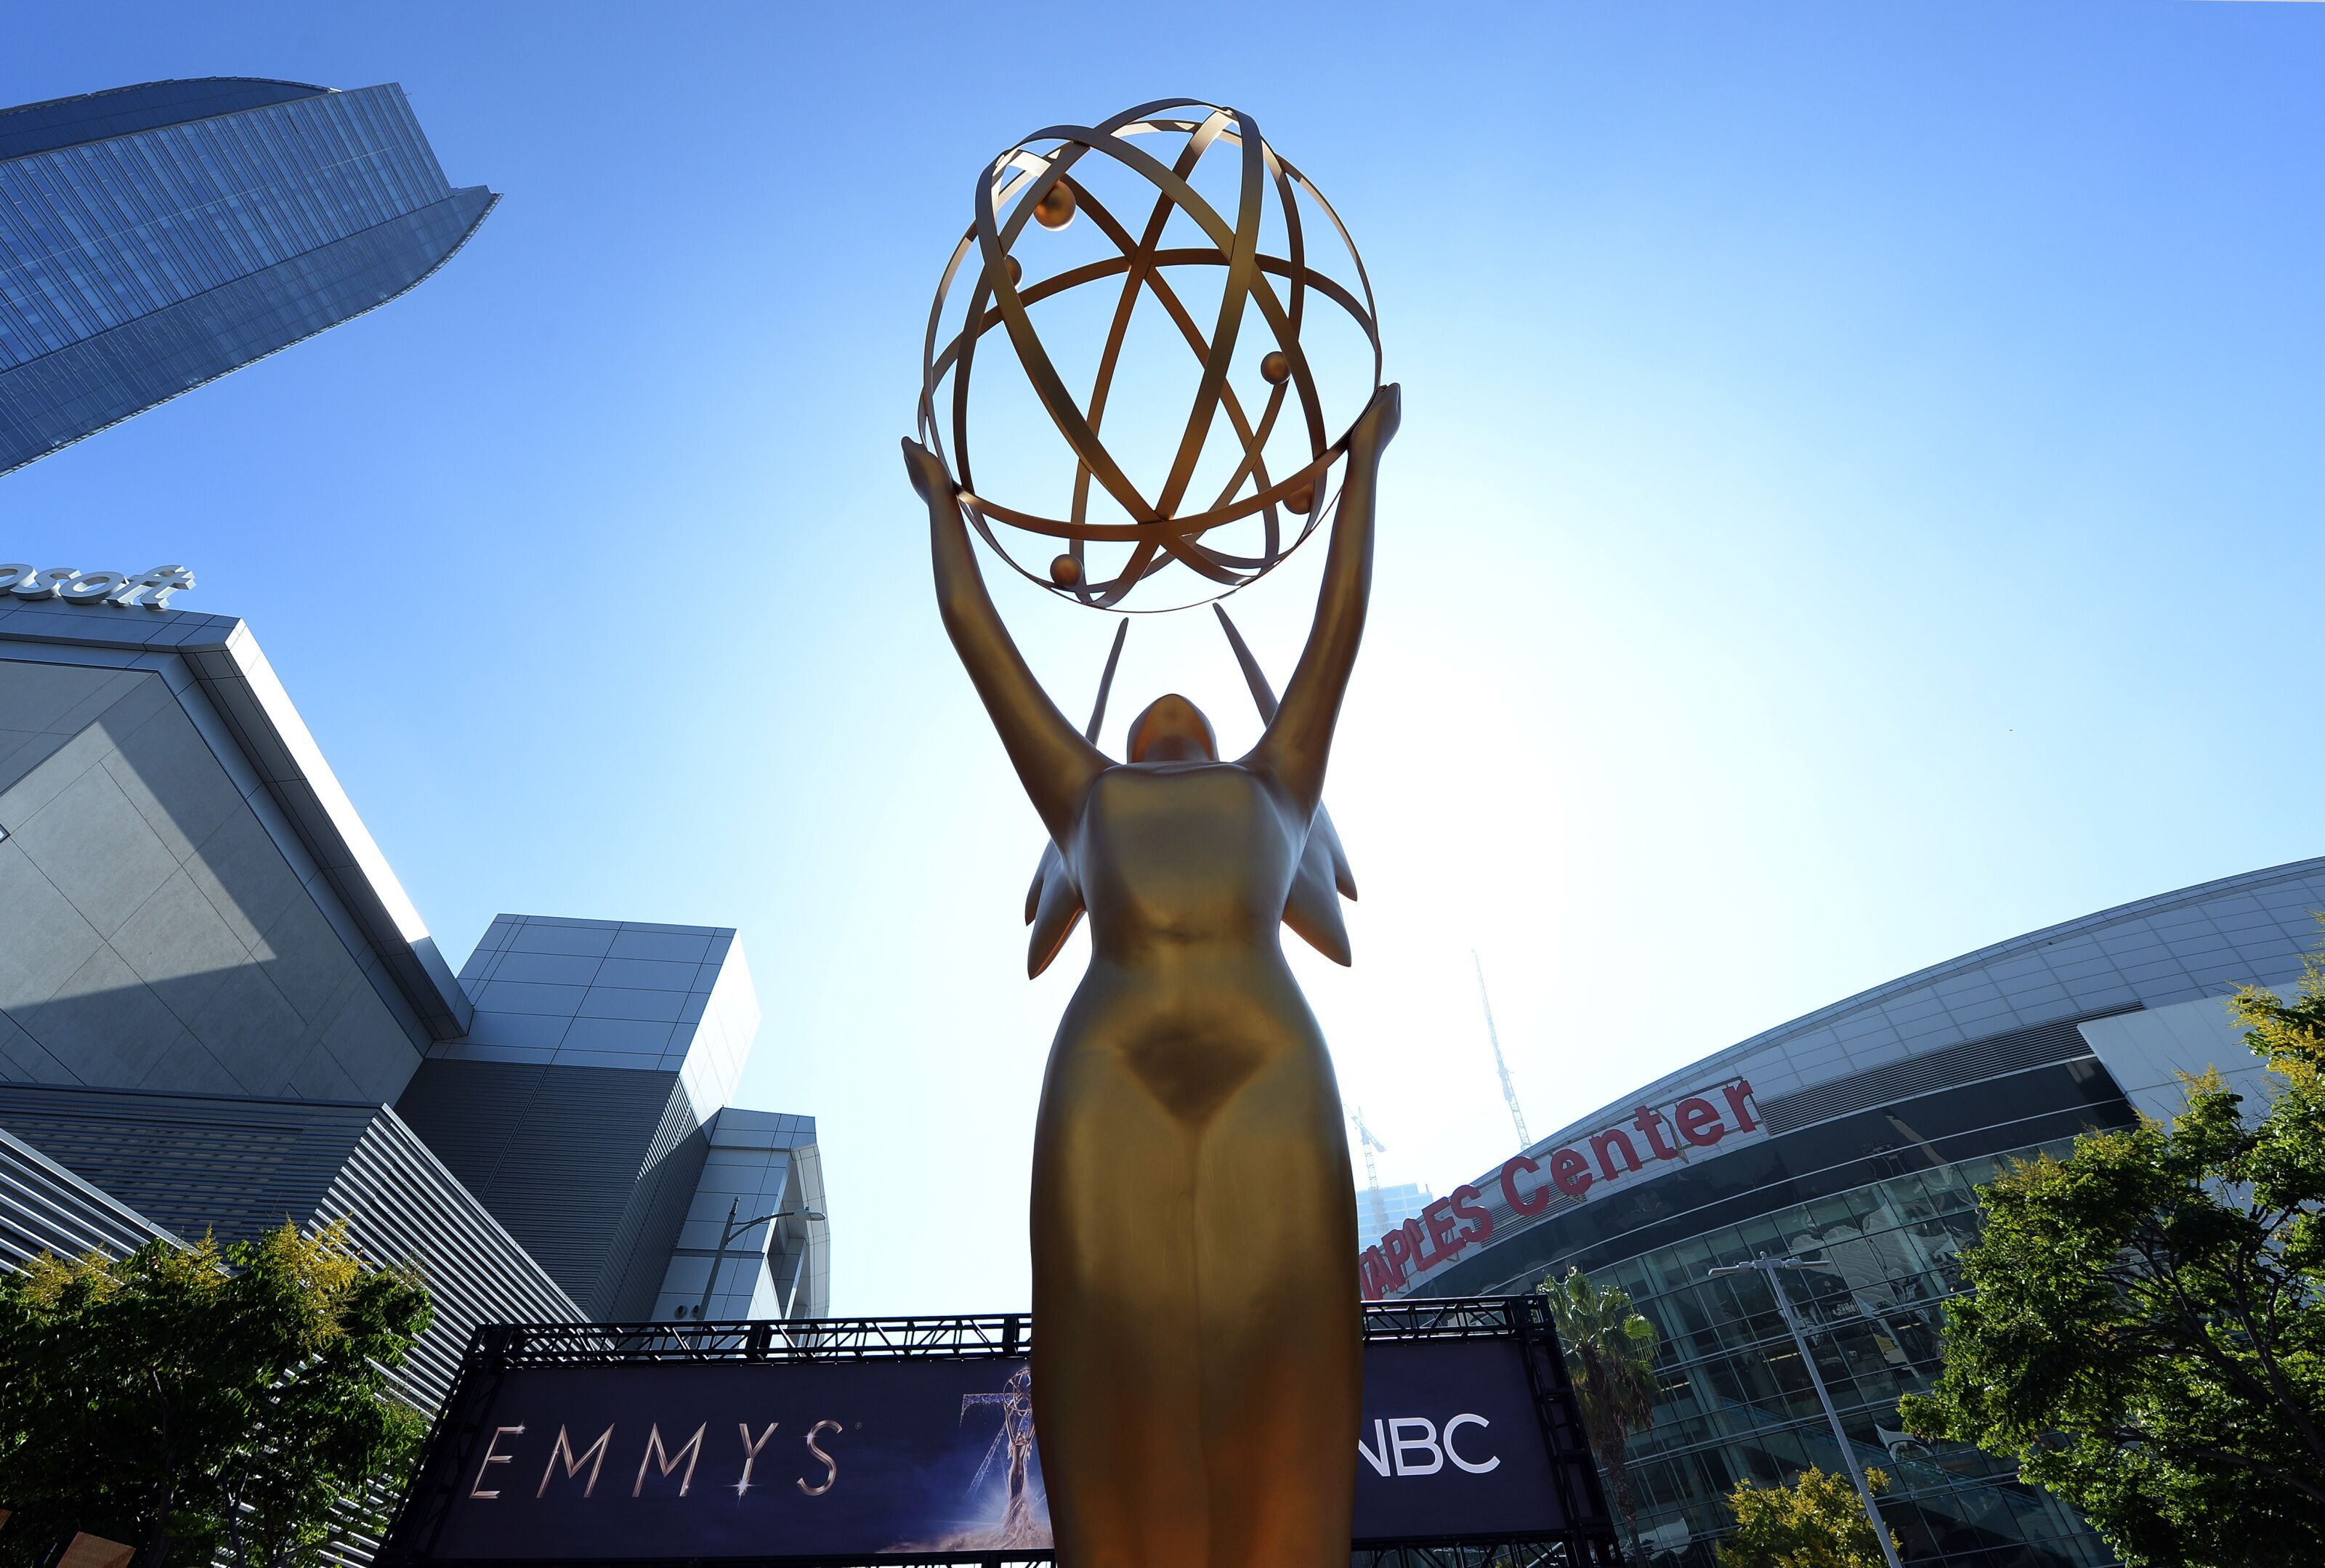 Emmys 2019: The 6 best acceptance speeches from the evening